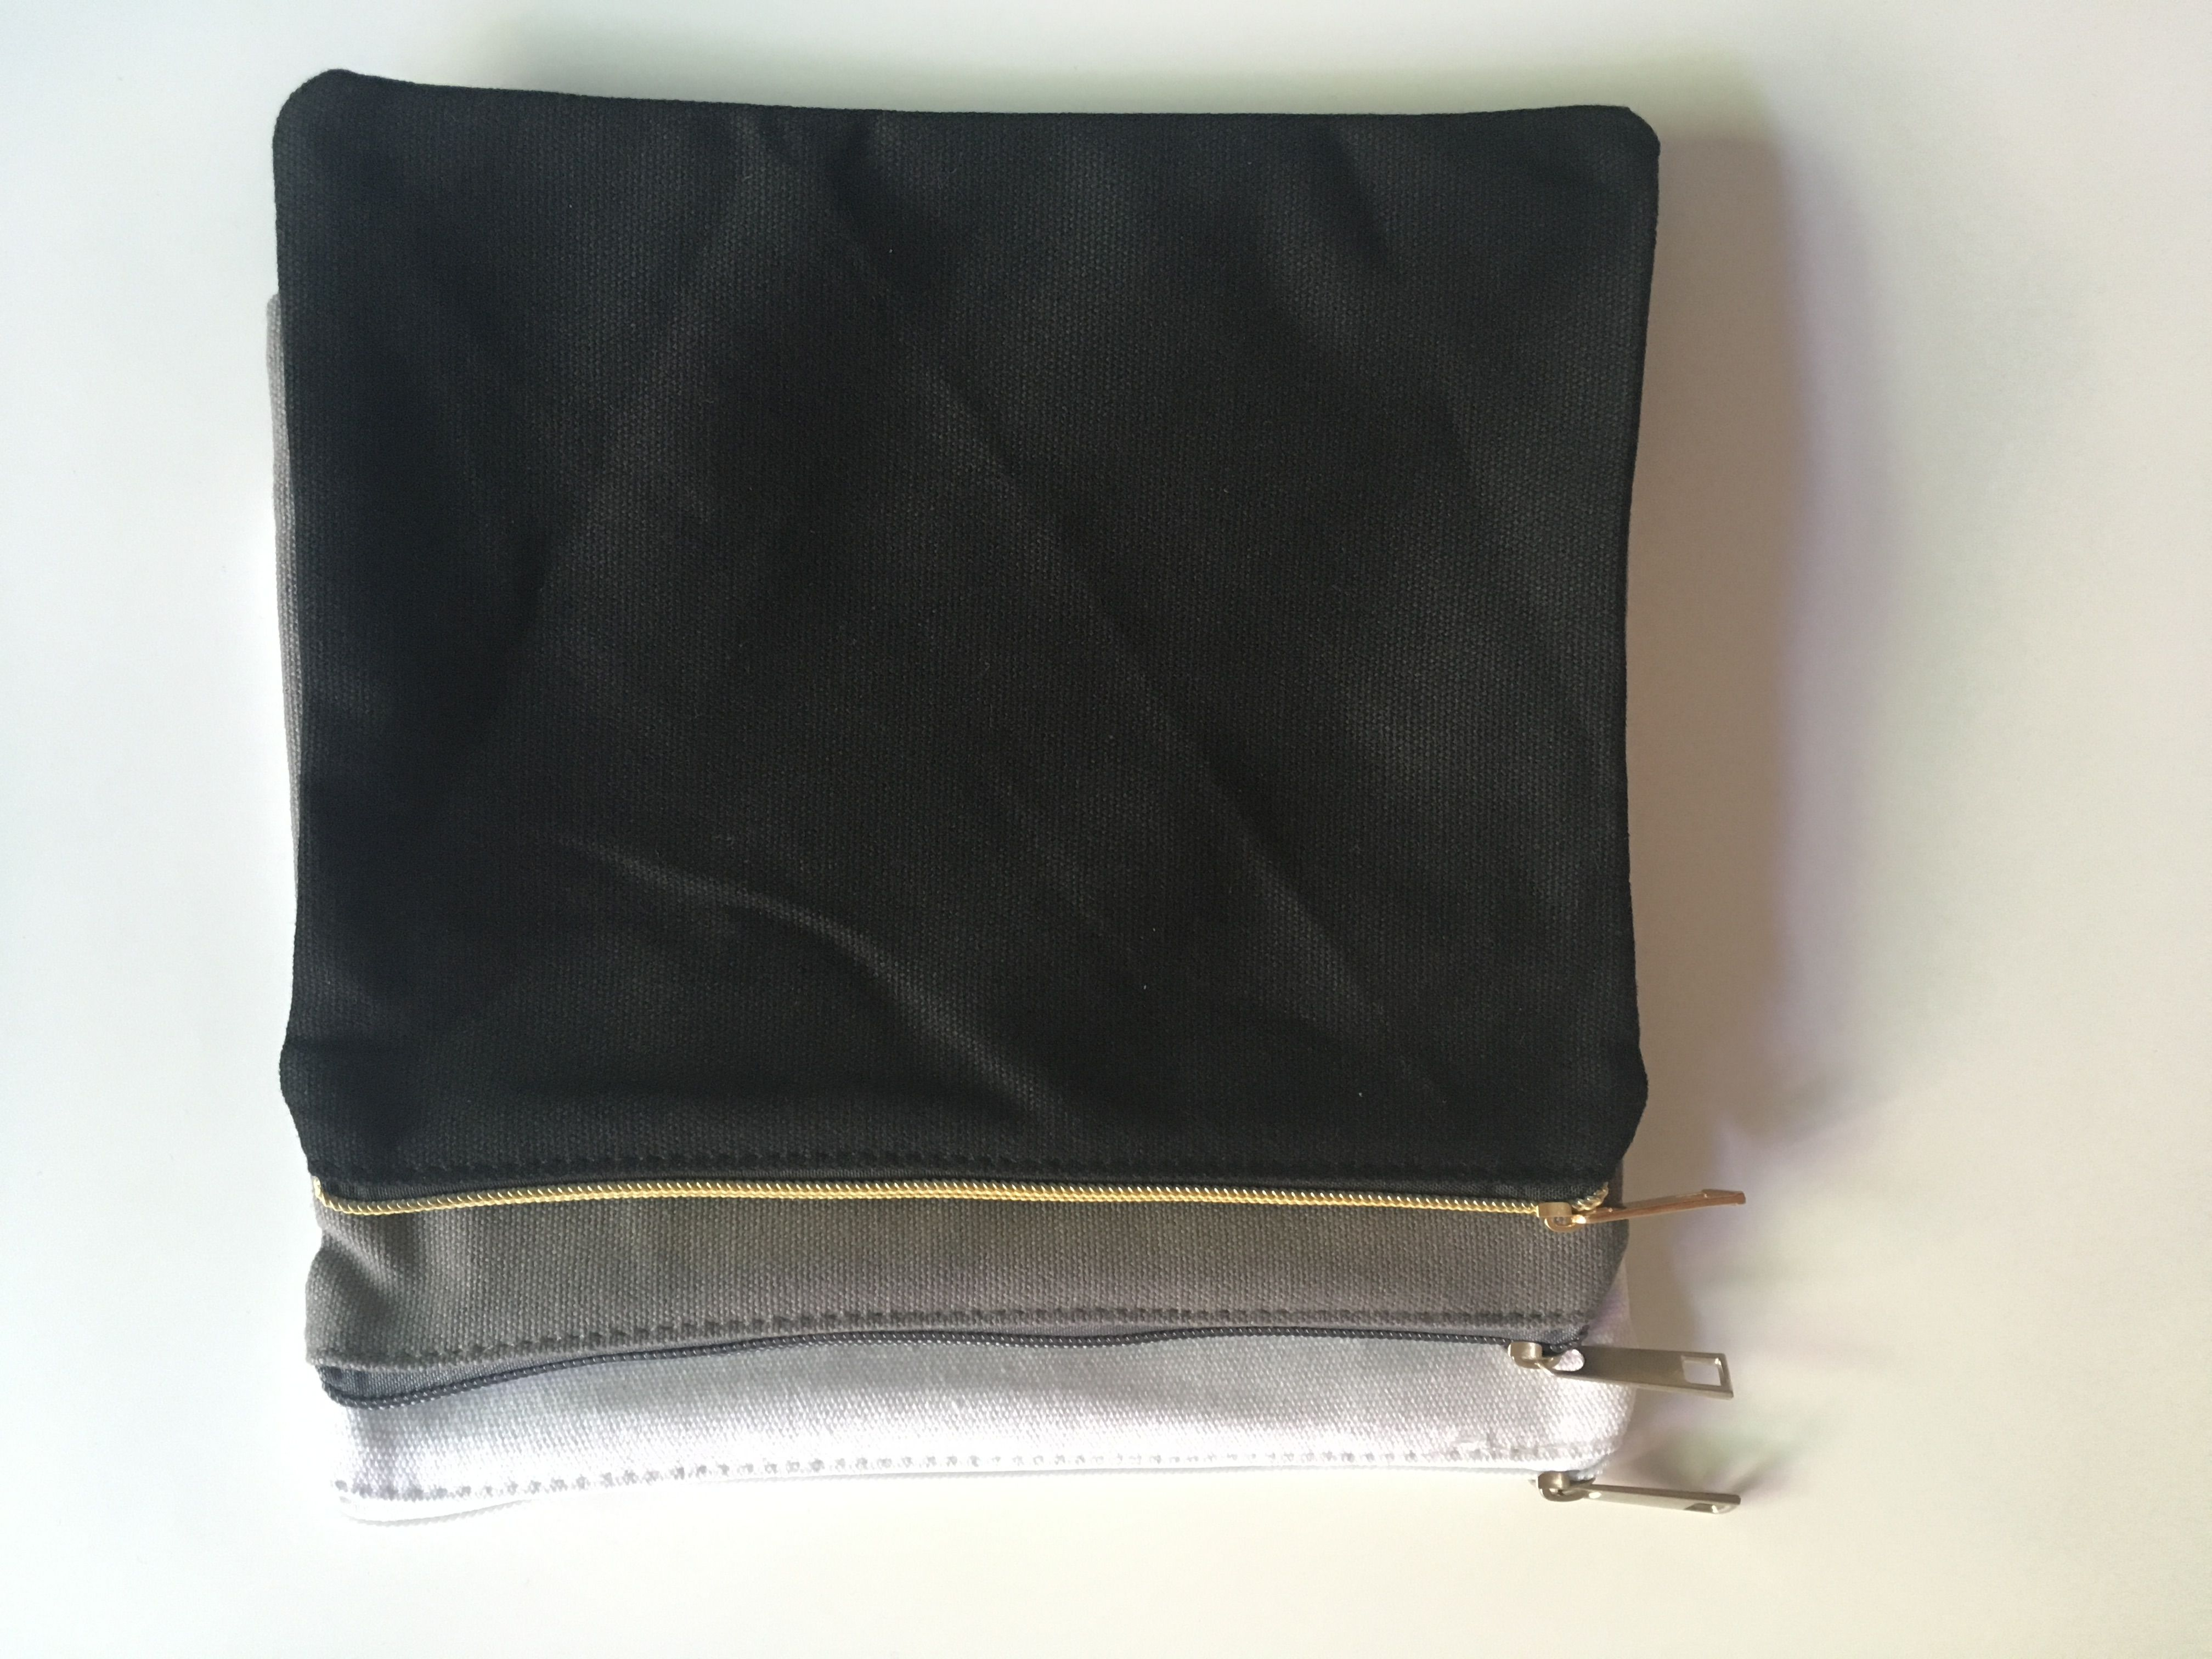 9*7 inch blank wholesale cosmetic bag Cotton bag, Bags